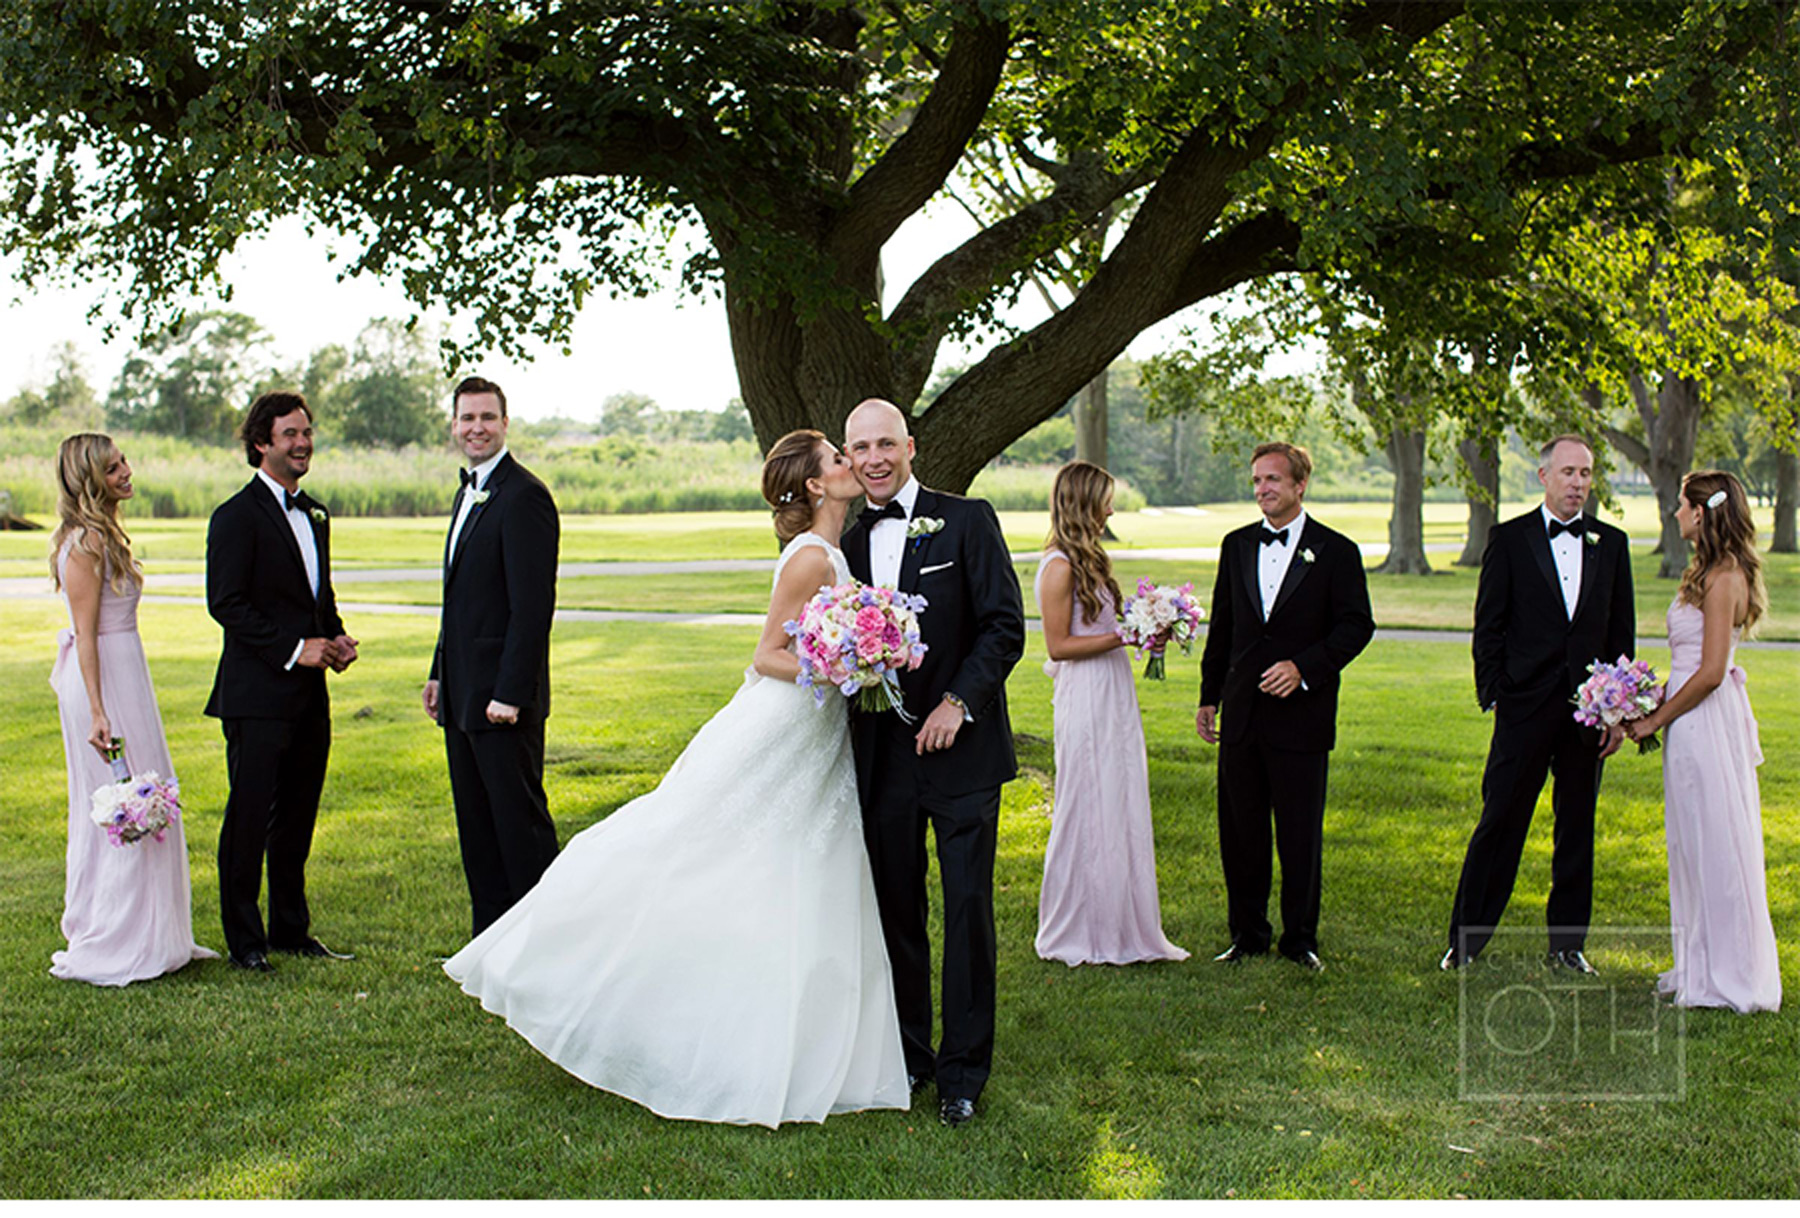 Our Muse - Romantic Traditional Wedding - Be inspired by Liz & Chris' romantic traditional country club wedding in New Jersey - wedding, programs, ceremony programs, ceci new york, navy, floral, inspiration, christian oth